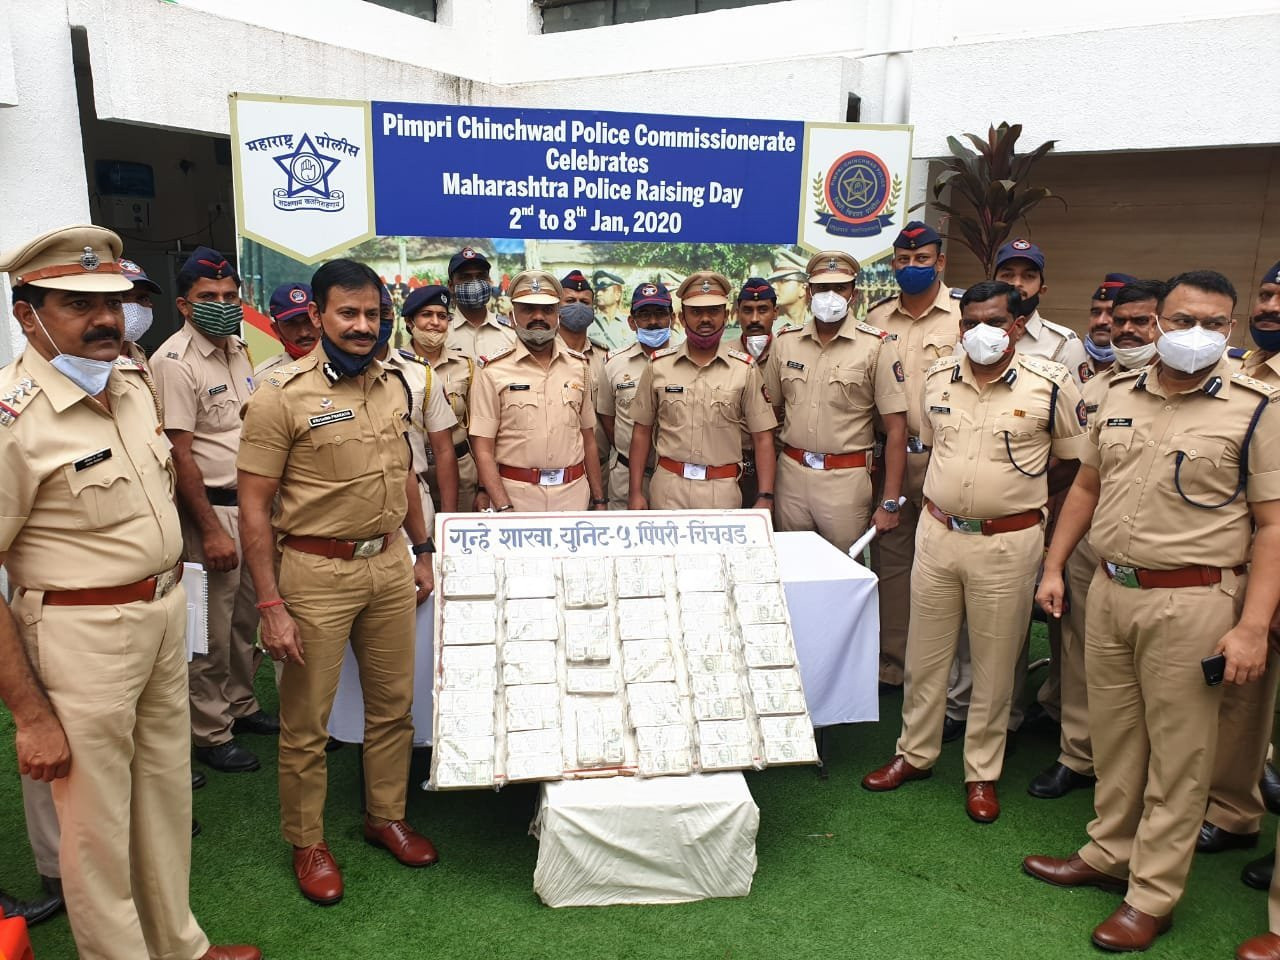 Nigerian, 13 others arrested in India as police bust biotech company involved in manufacturing and selling of Mephedrone drug